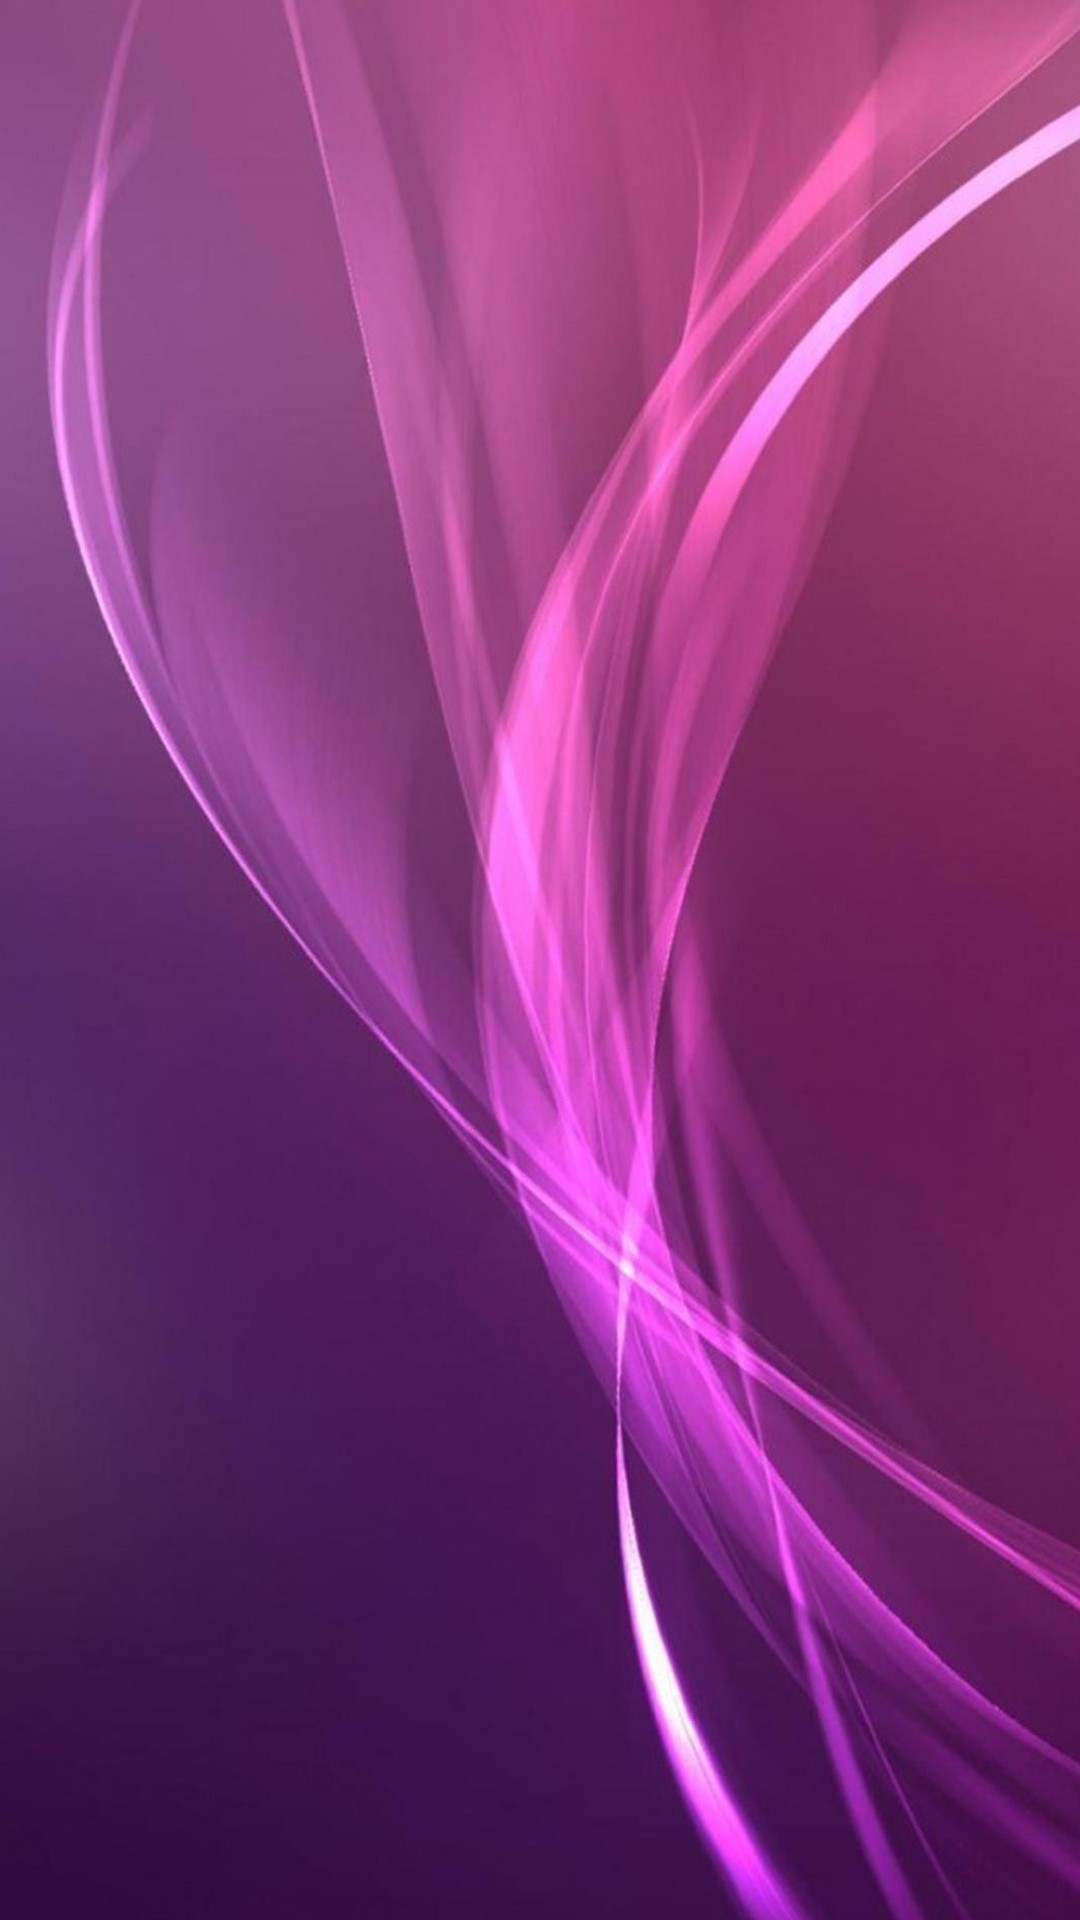 1080x1920 Wallpaper backgrounds · http://mwp4.me/abstract/purple-translucent-curves-